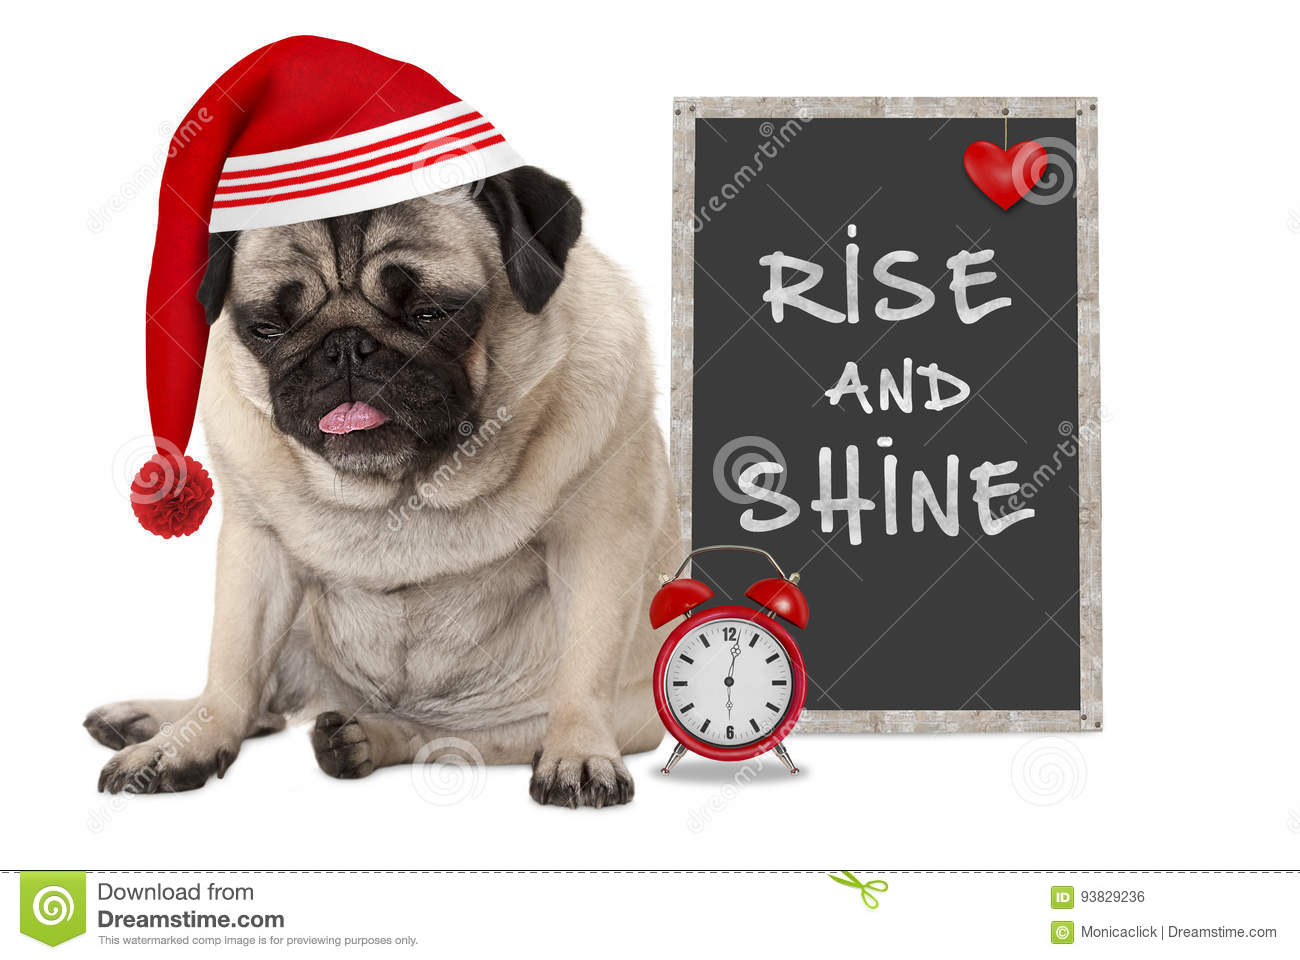 Getting up in early morning, grumpy pug puppy dog with red sleeping cap, alarm clock and sign with text rise and shine